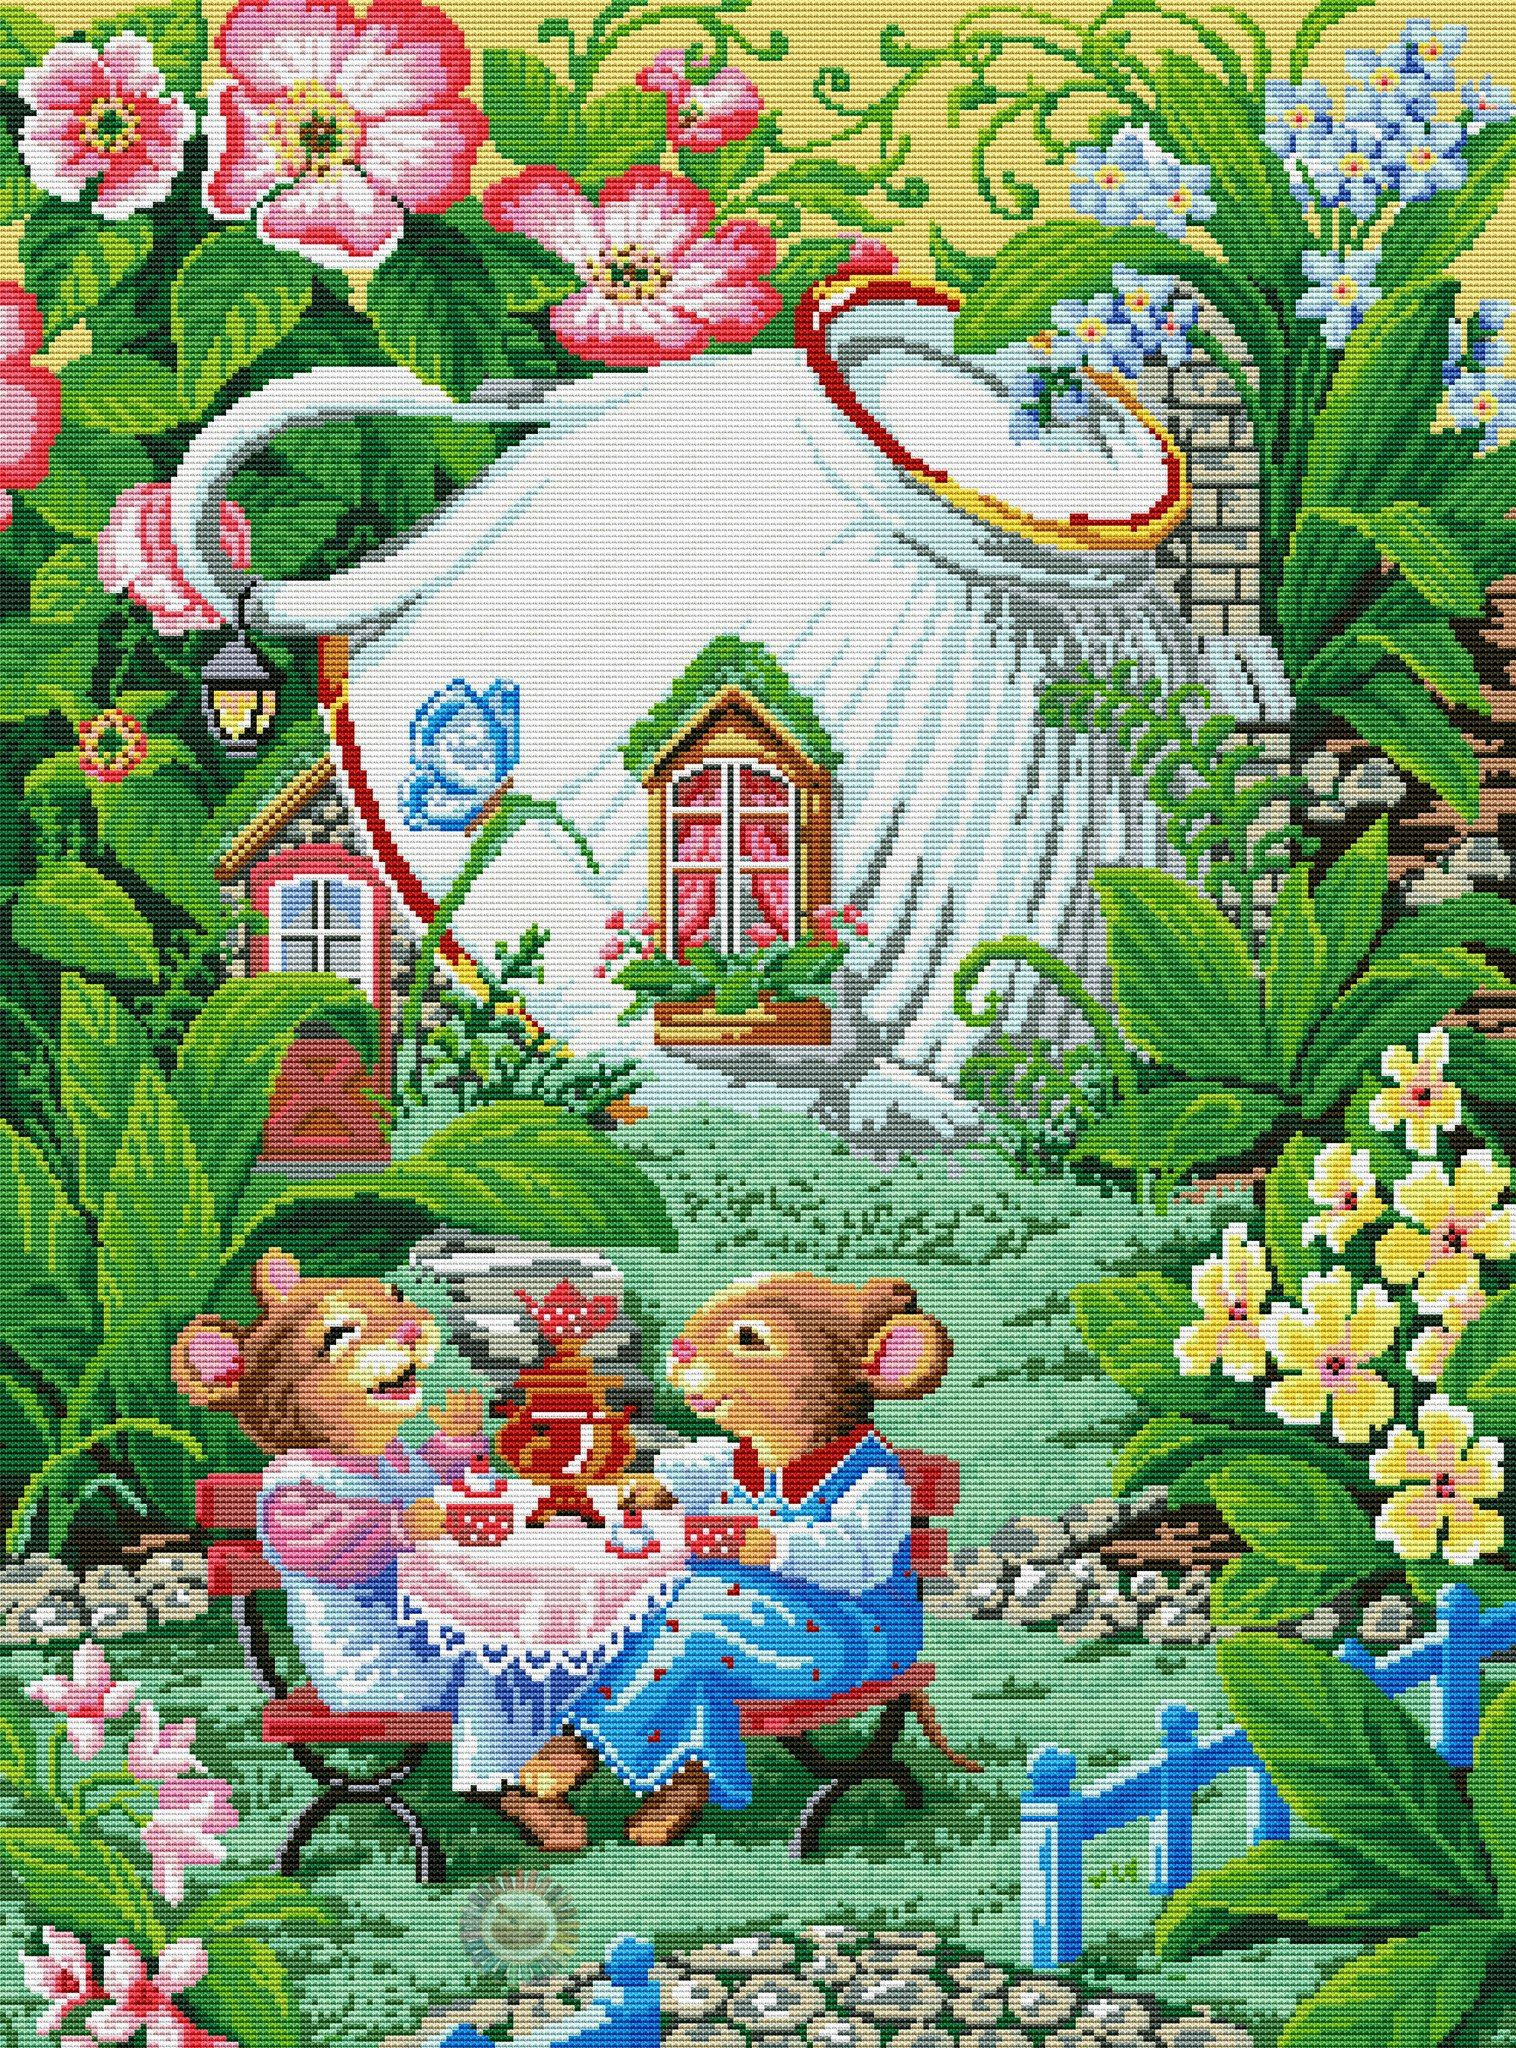 Tea in the Garden (Another name for this embroidery is ...